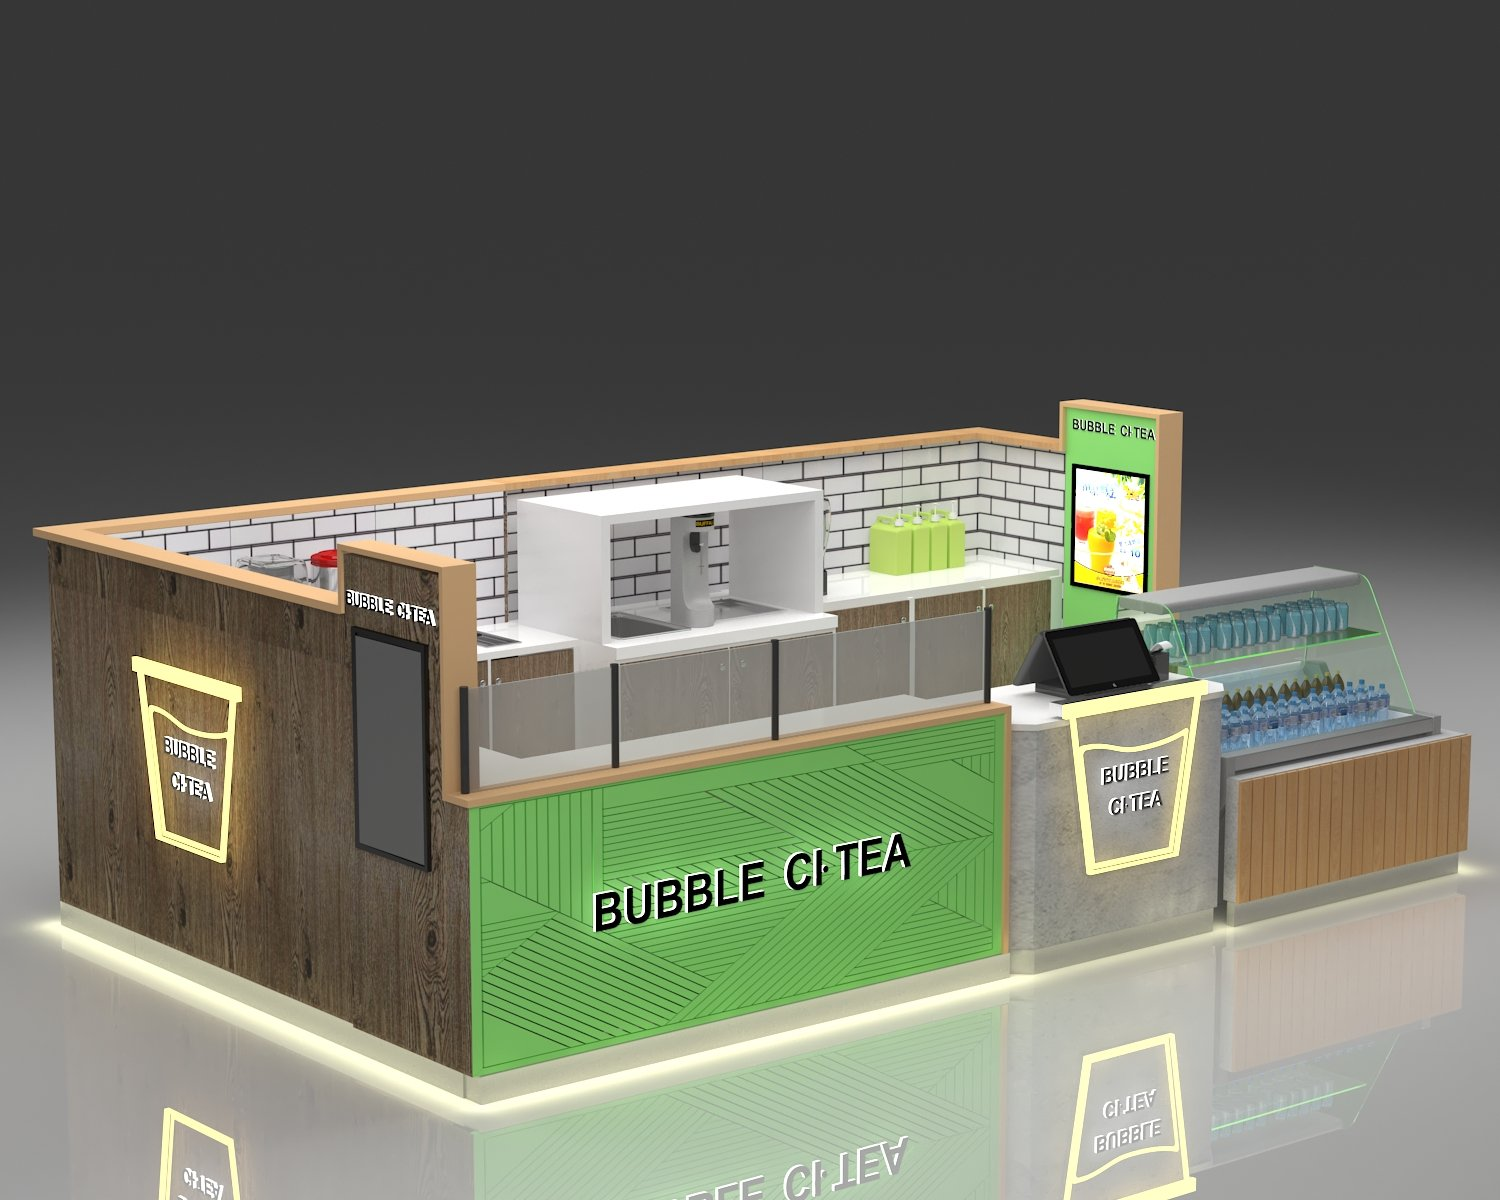 3d design of the bubble tea kiosk